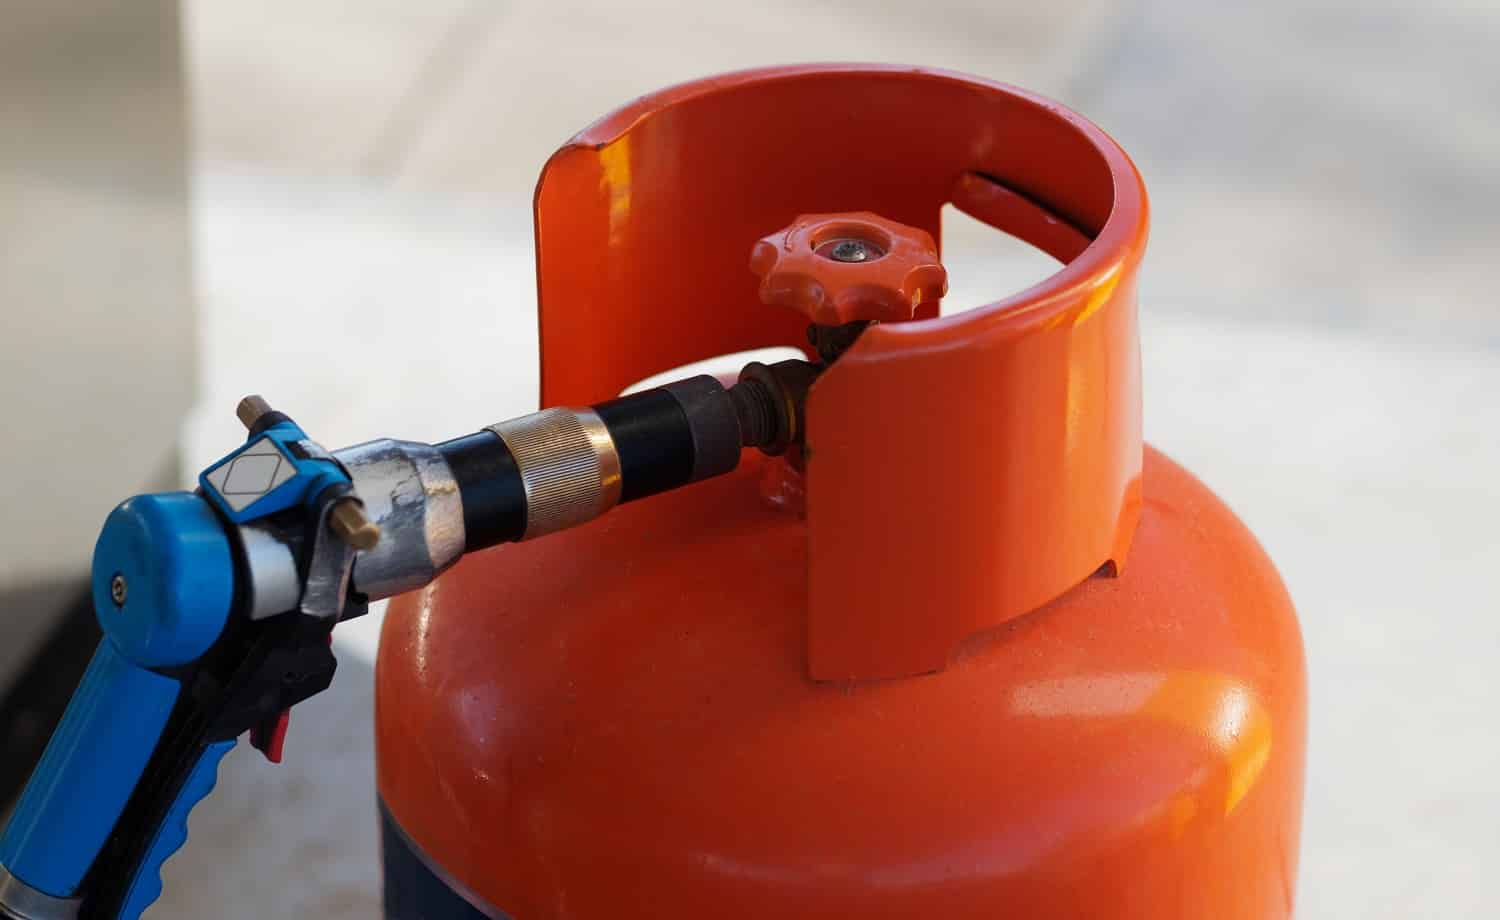 Close-up view. Refilling Gas Cylinder at a gas station. Dominican Republic.